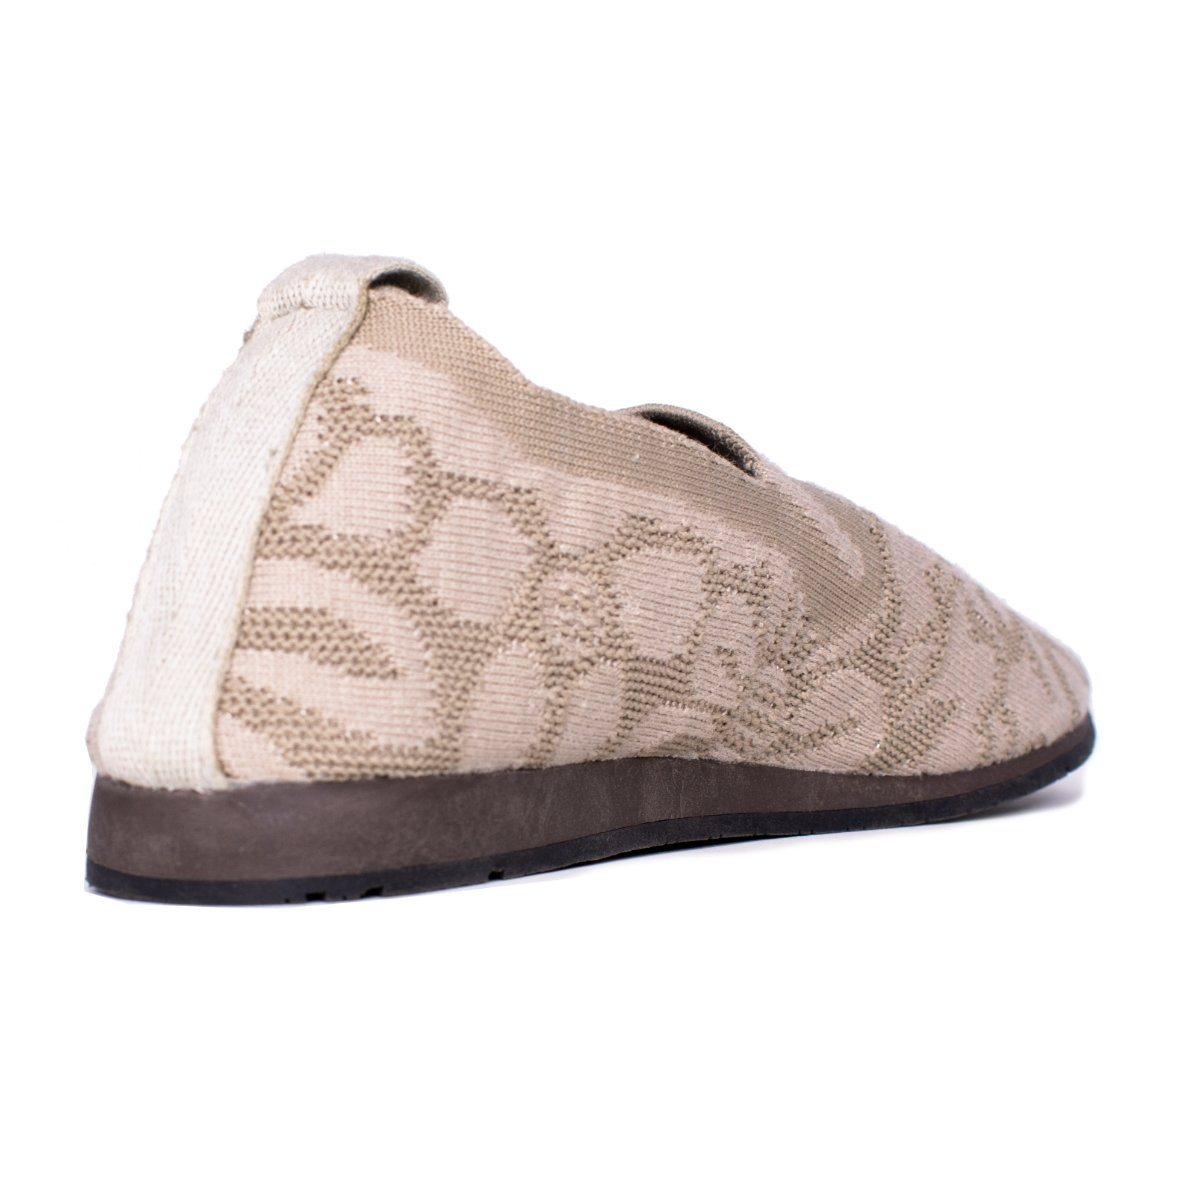 Back close view of gray walking flat shoe with lace pattern